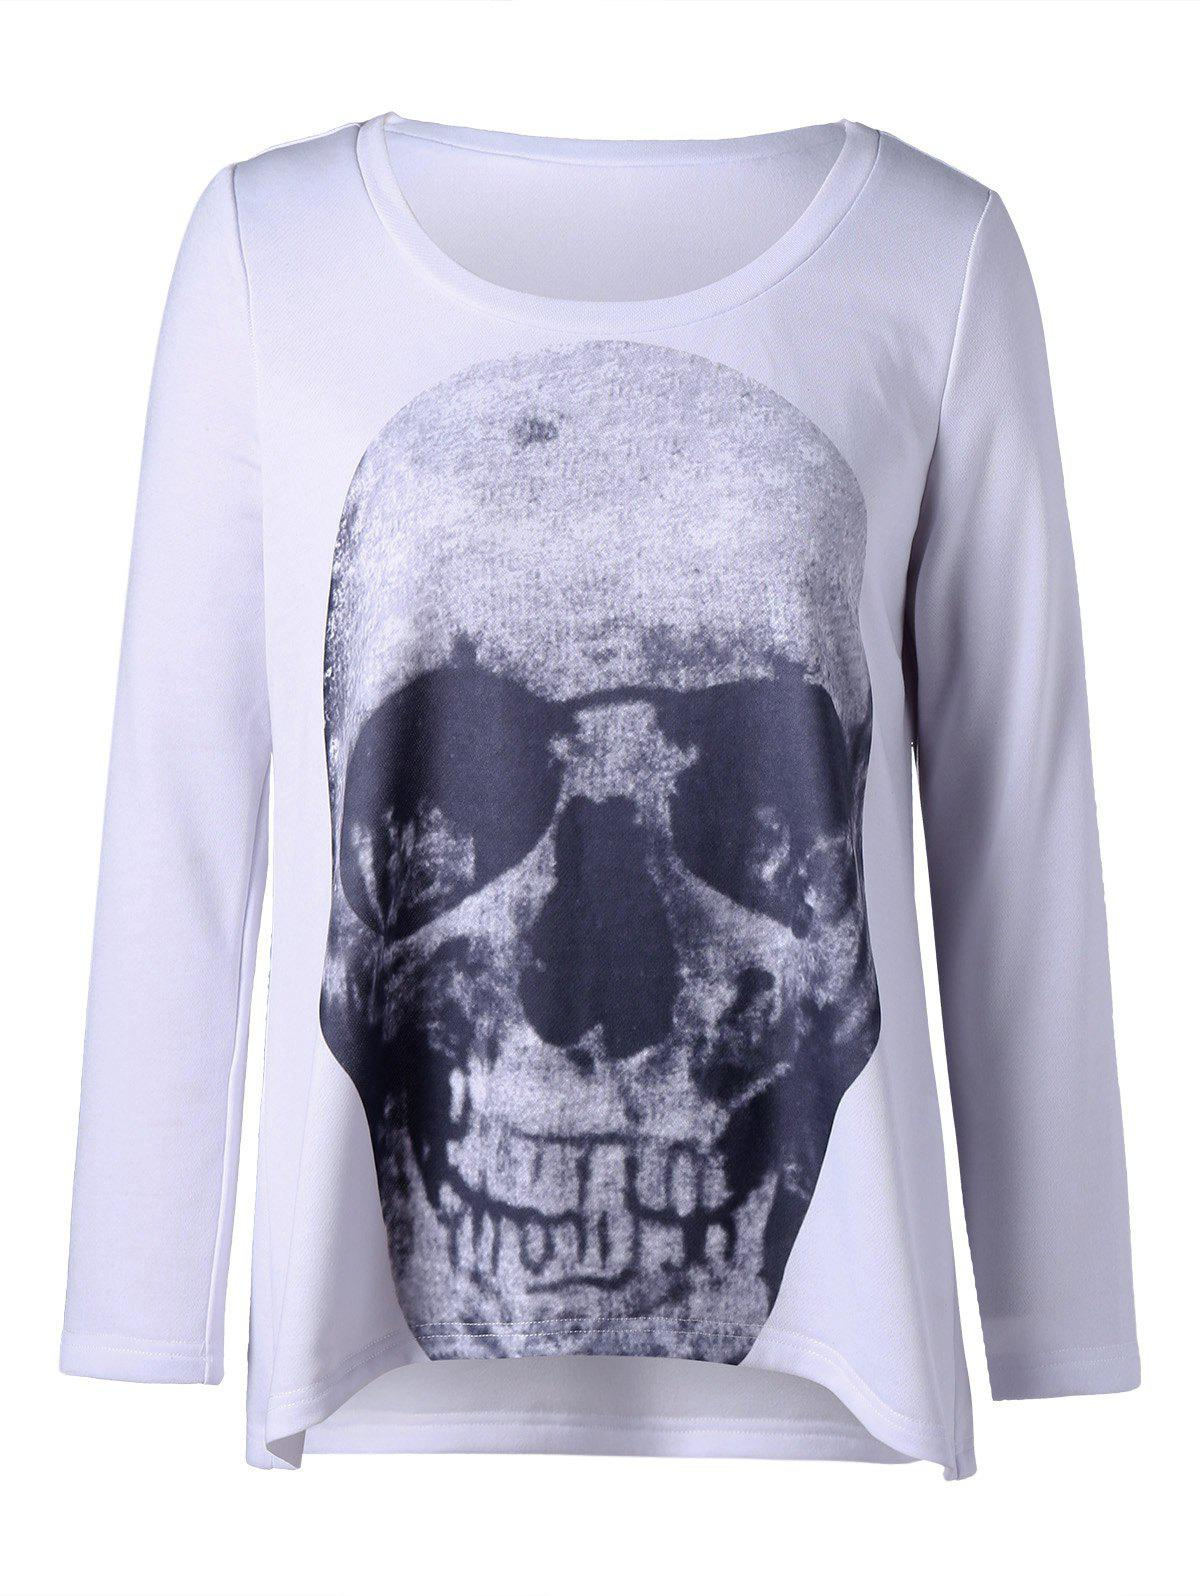 Plus Size Skull Long Sleeve T-shirt - WHITE 2XL